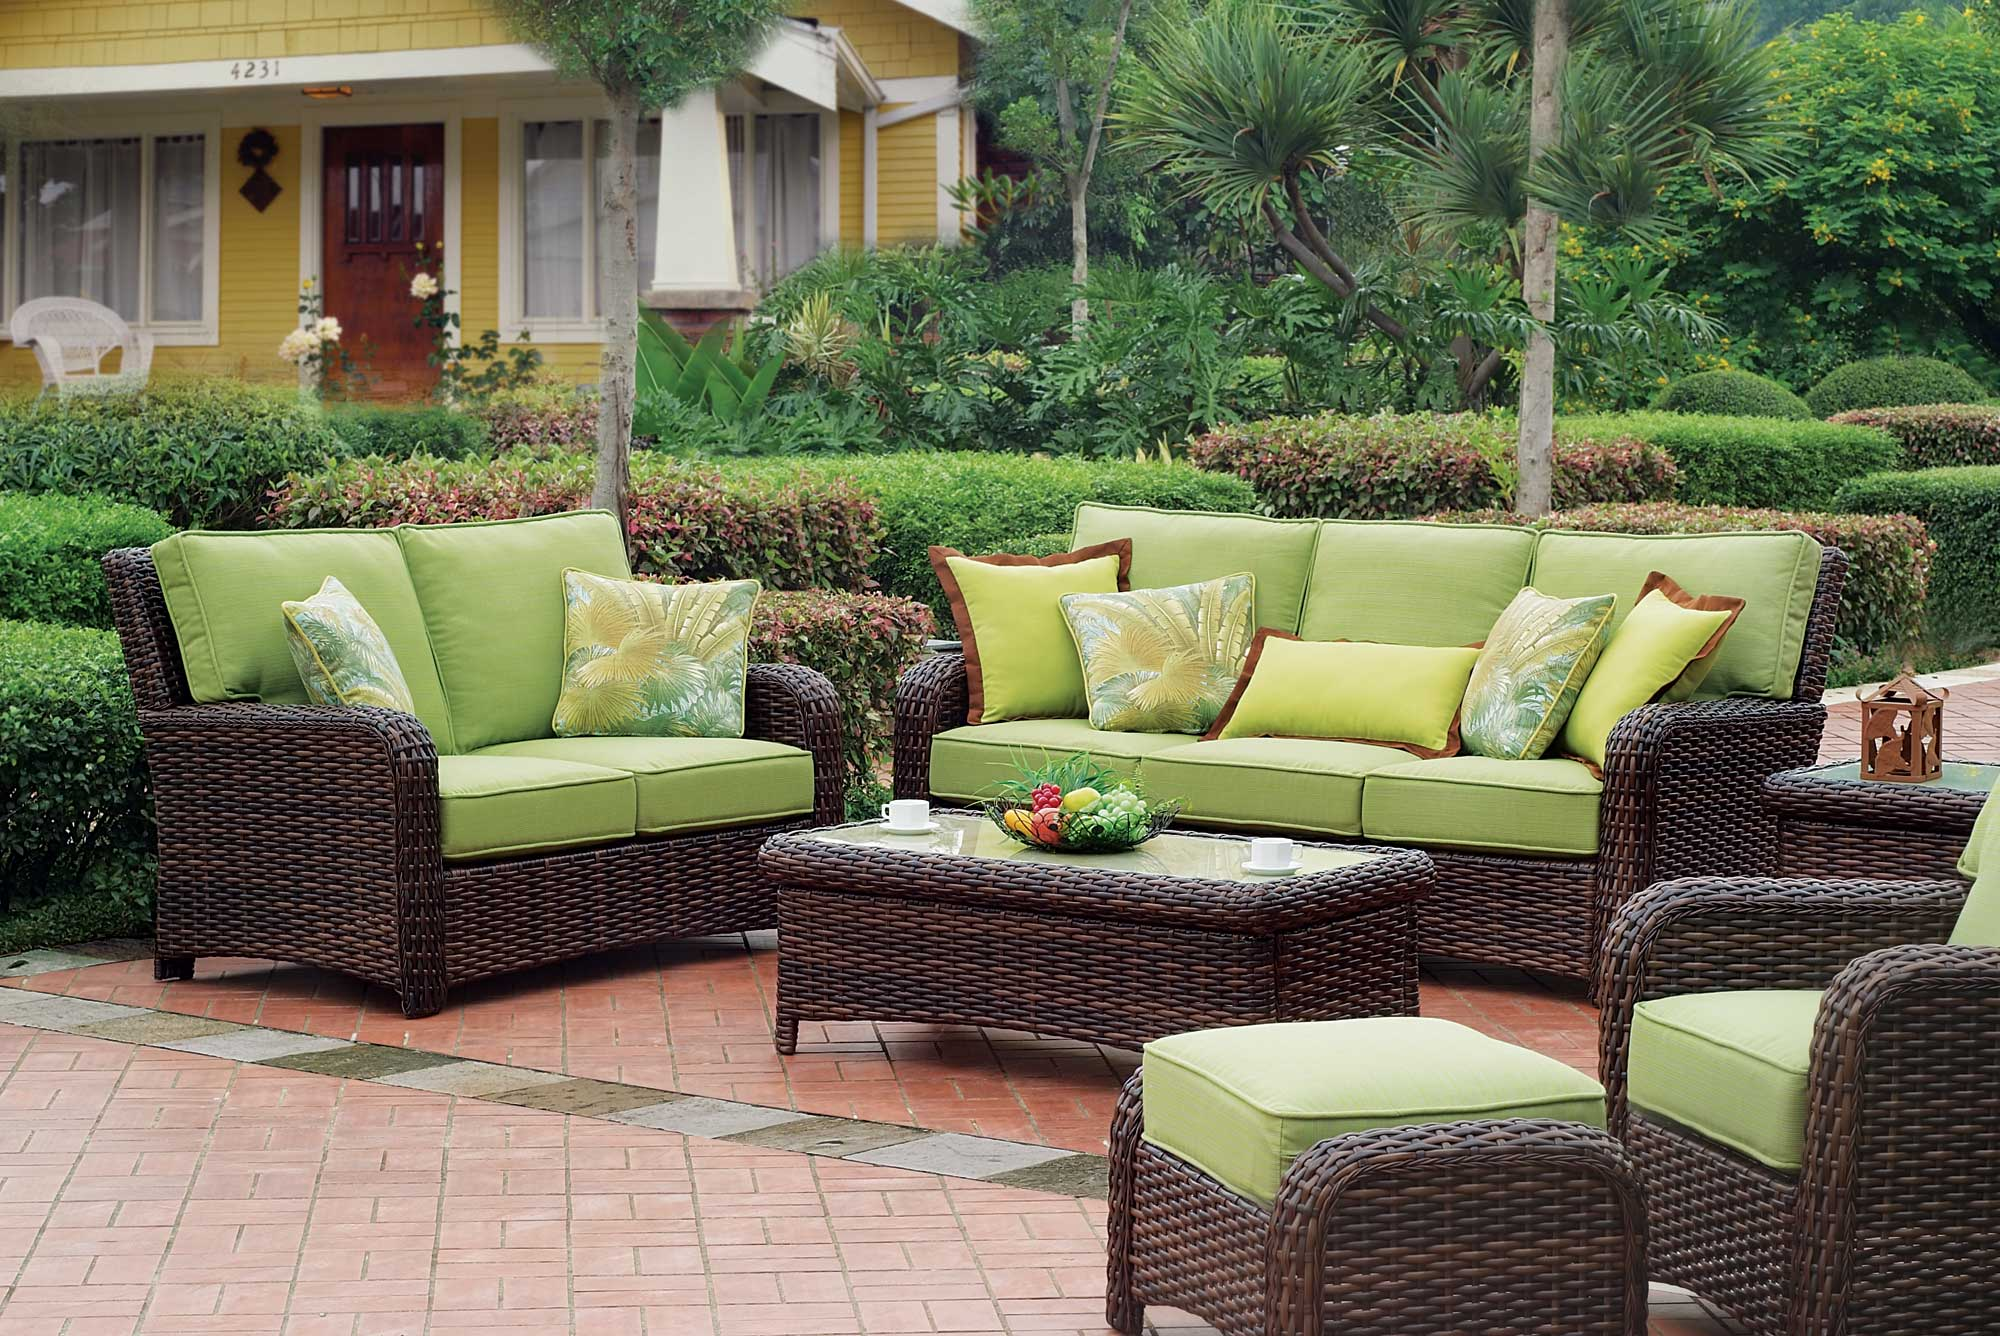 Comfortable Outdoor Seating Idea With Best Patio Furniture Brands Of Rattan Sofa Green Bolster And